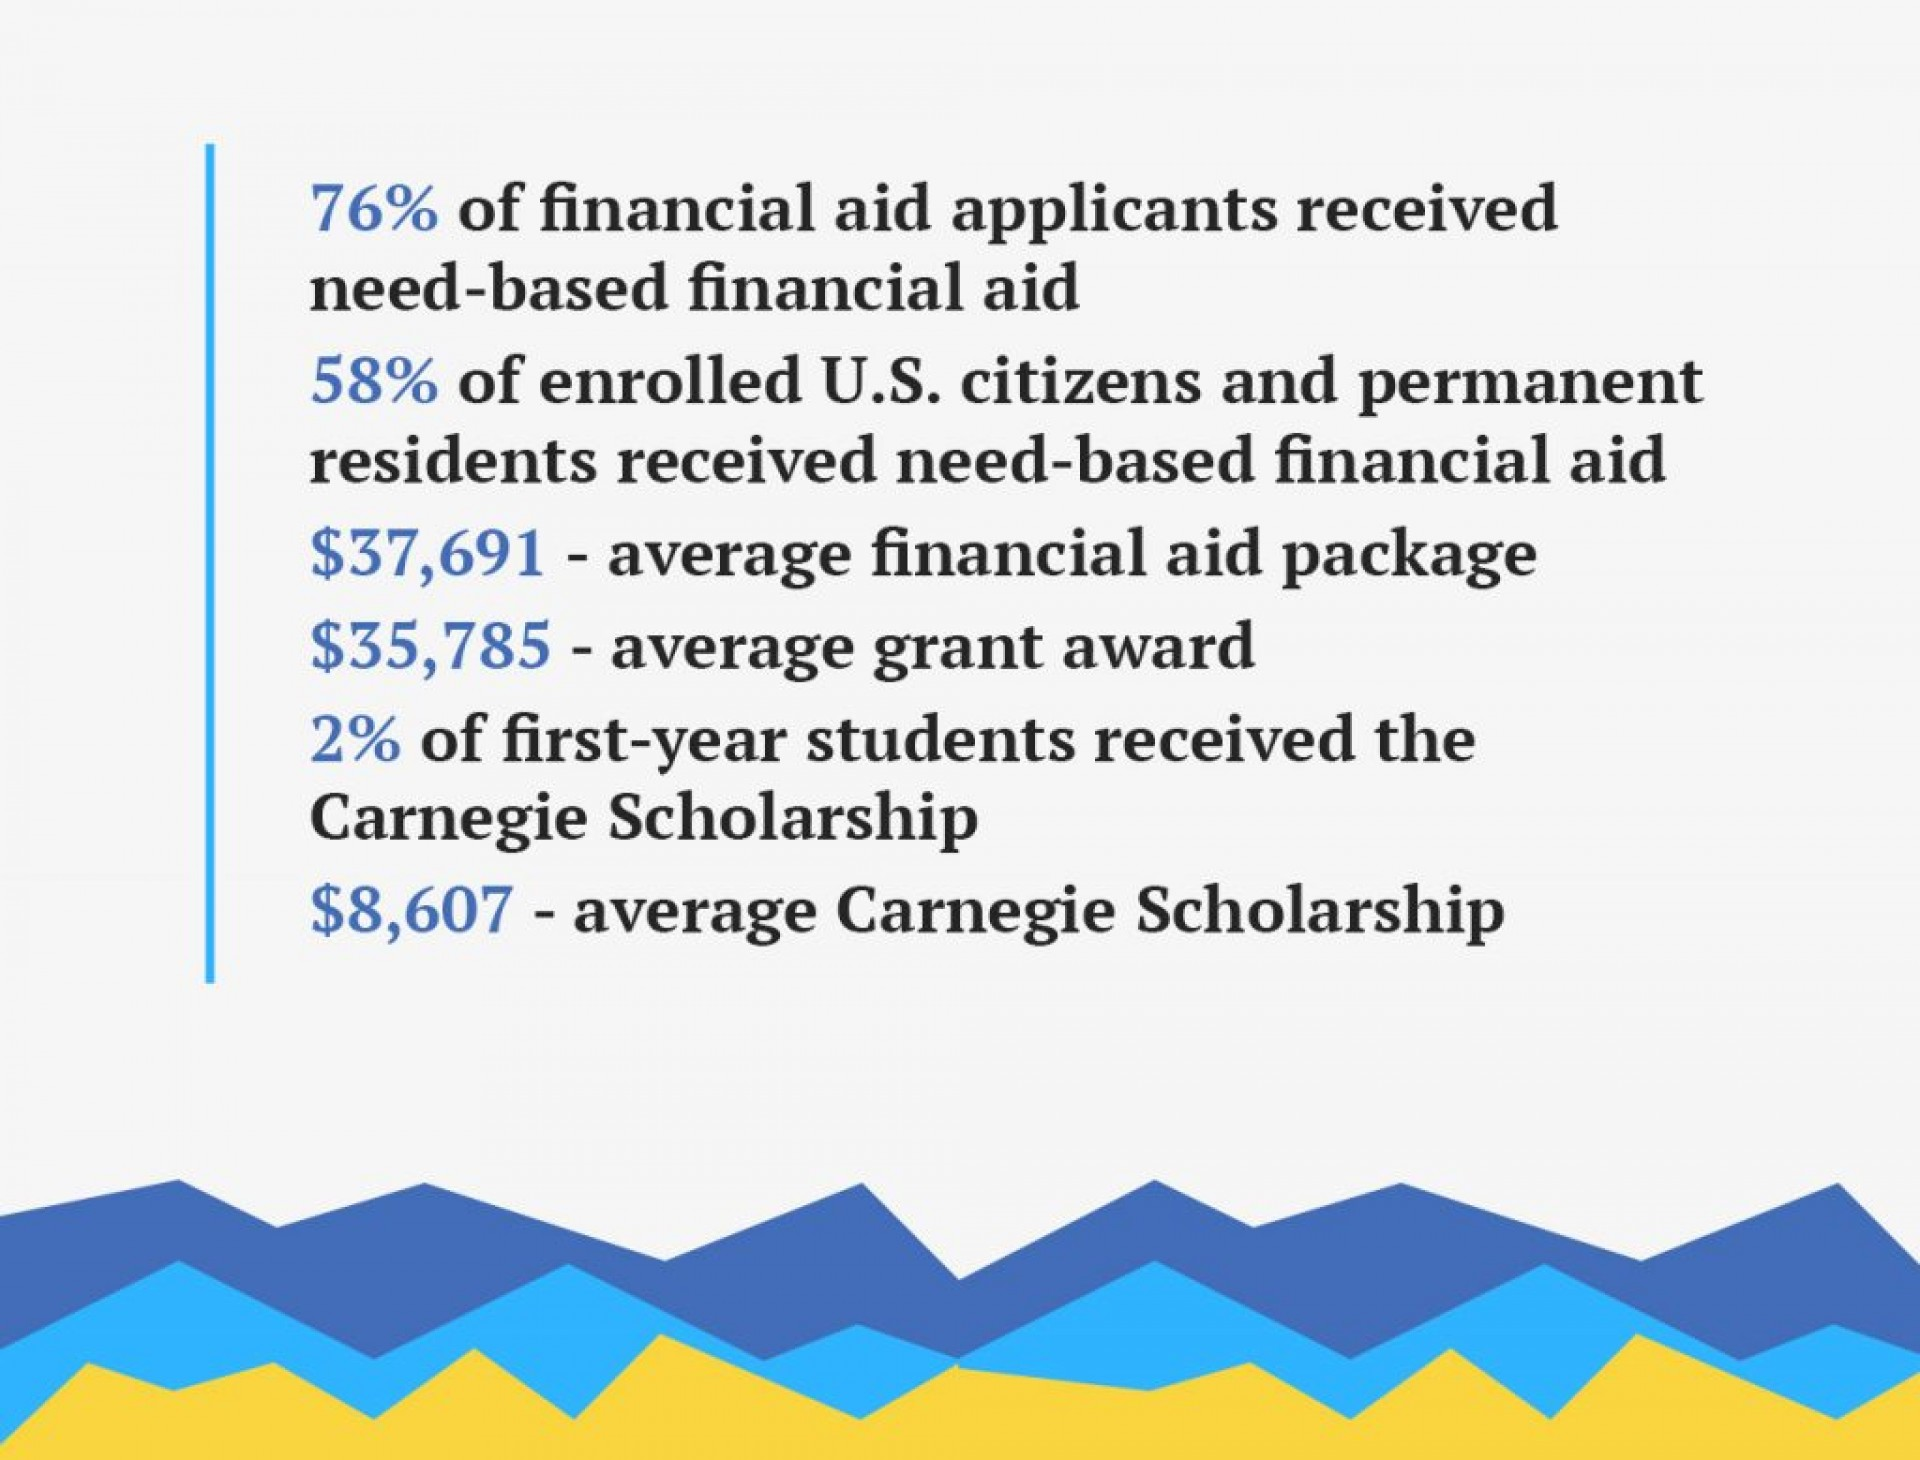 005 Essay Example Financial Aid Statistics 1024x779 Why Do You Deserve This Awesome Scholarship Think Sample How To Write A 1920